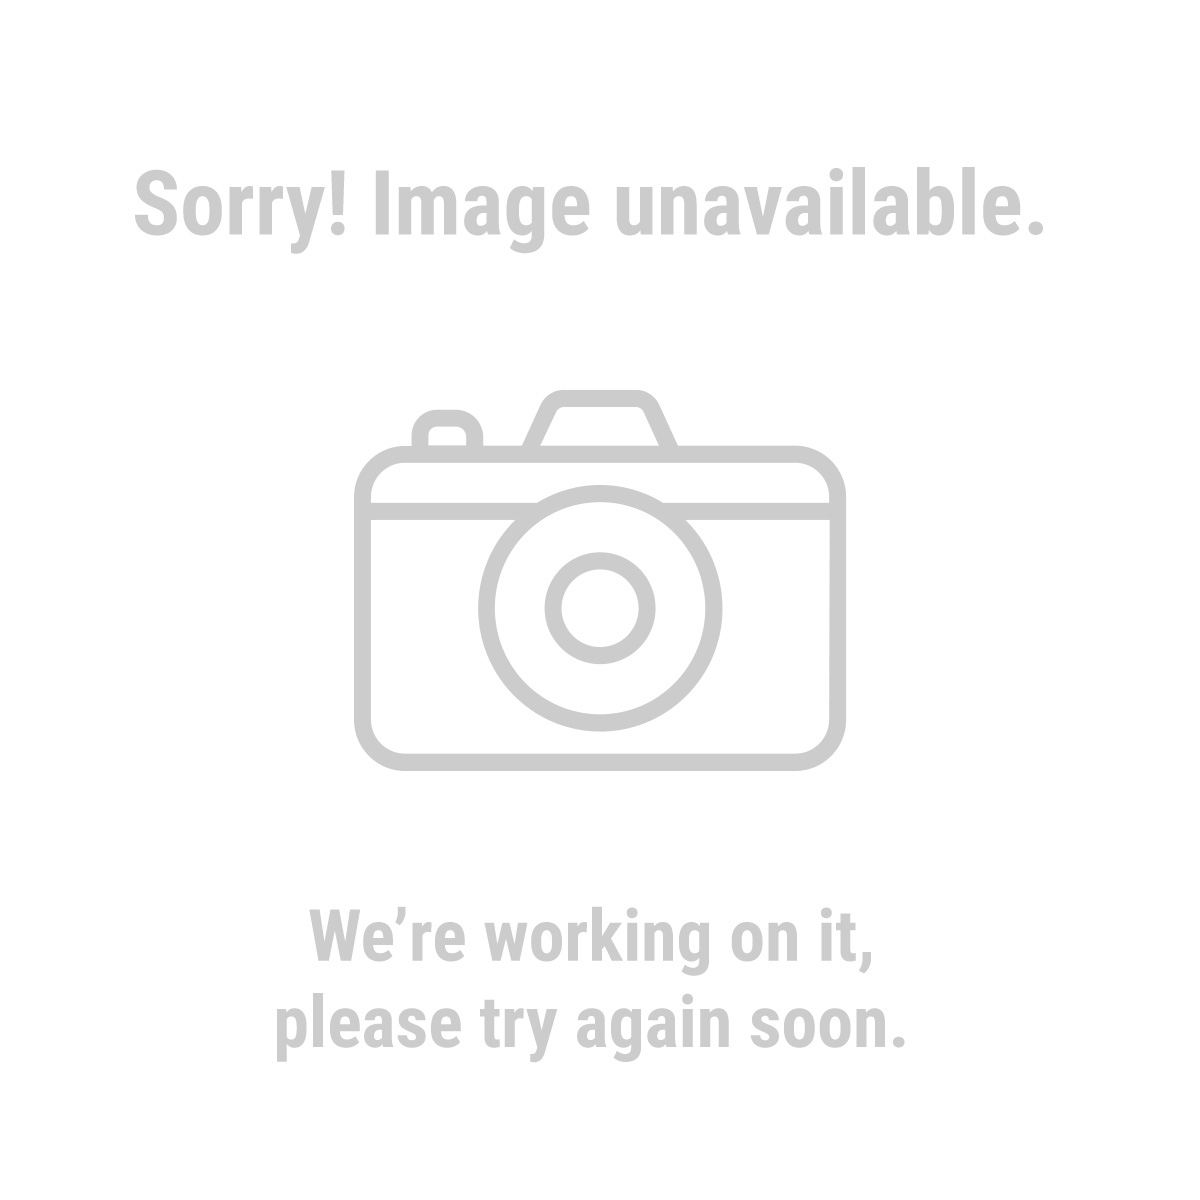 "Krause & Becker 1508 1-1/2"" Sash Brush"